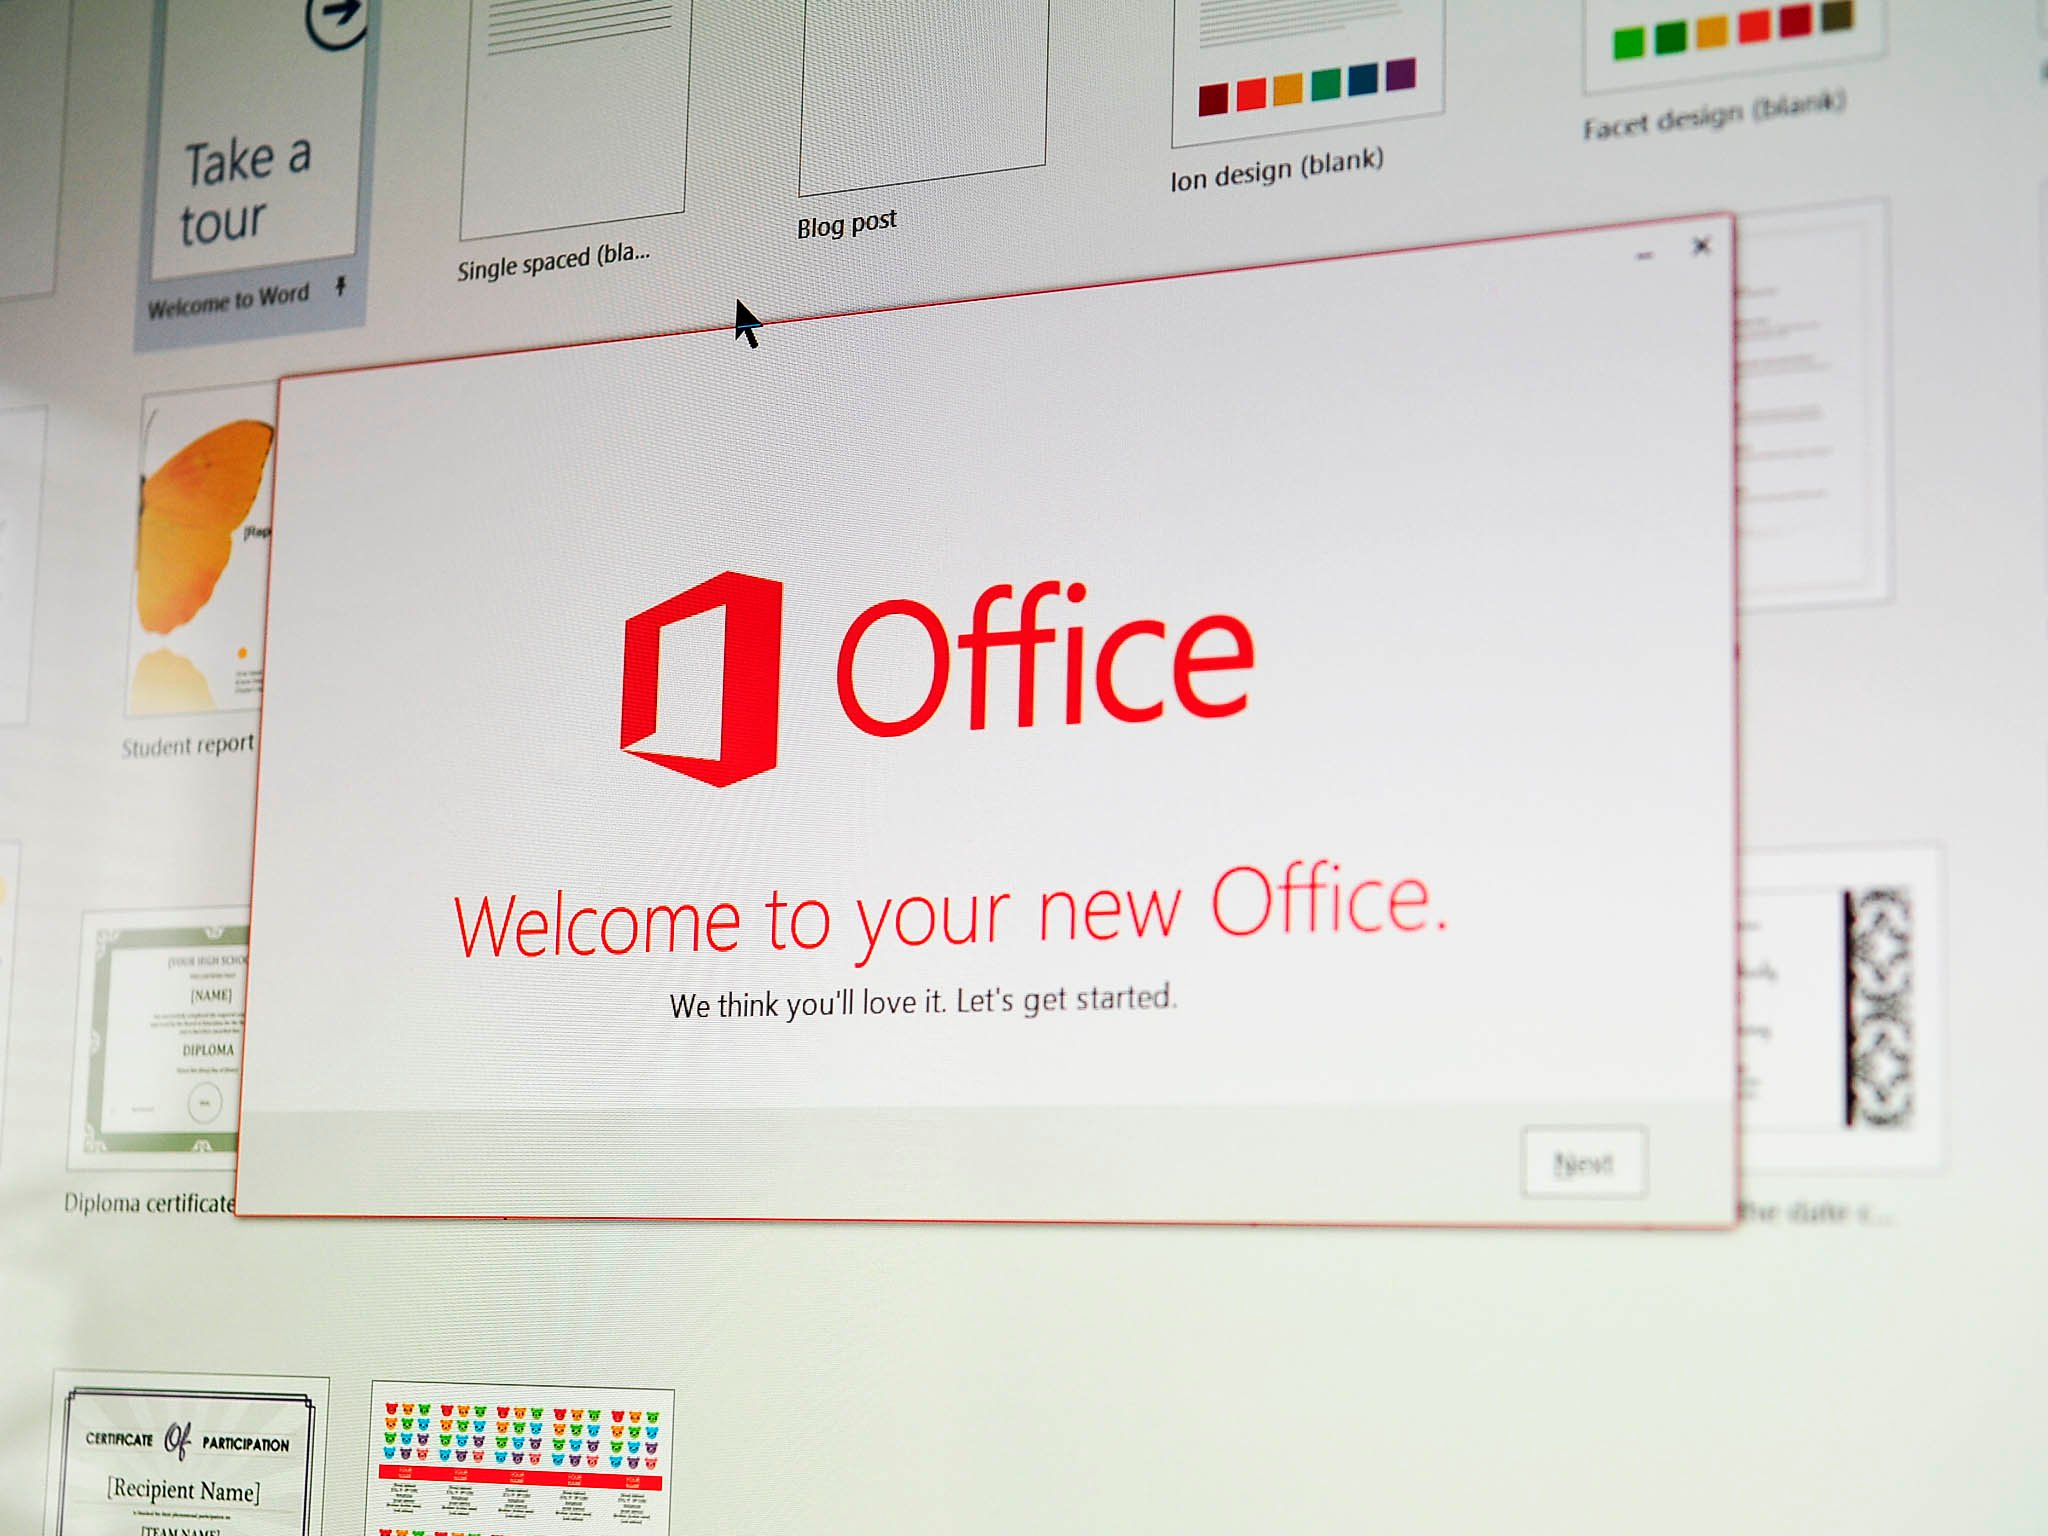 Visio Office Office 2016 Insider Update Brings Autocad Support To Visio